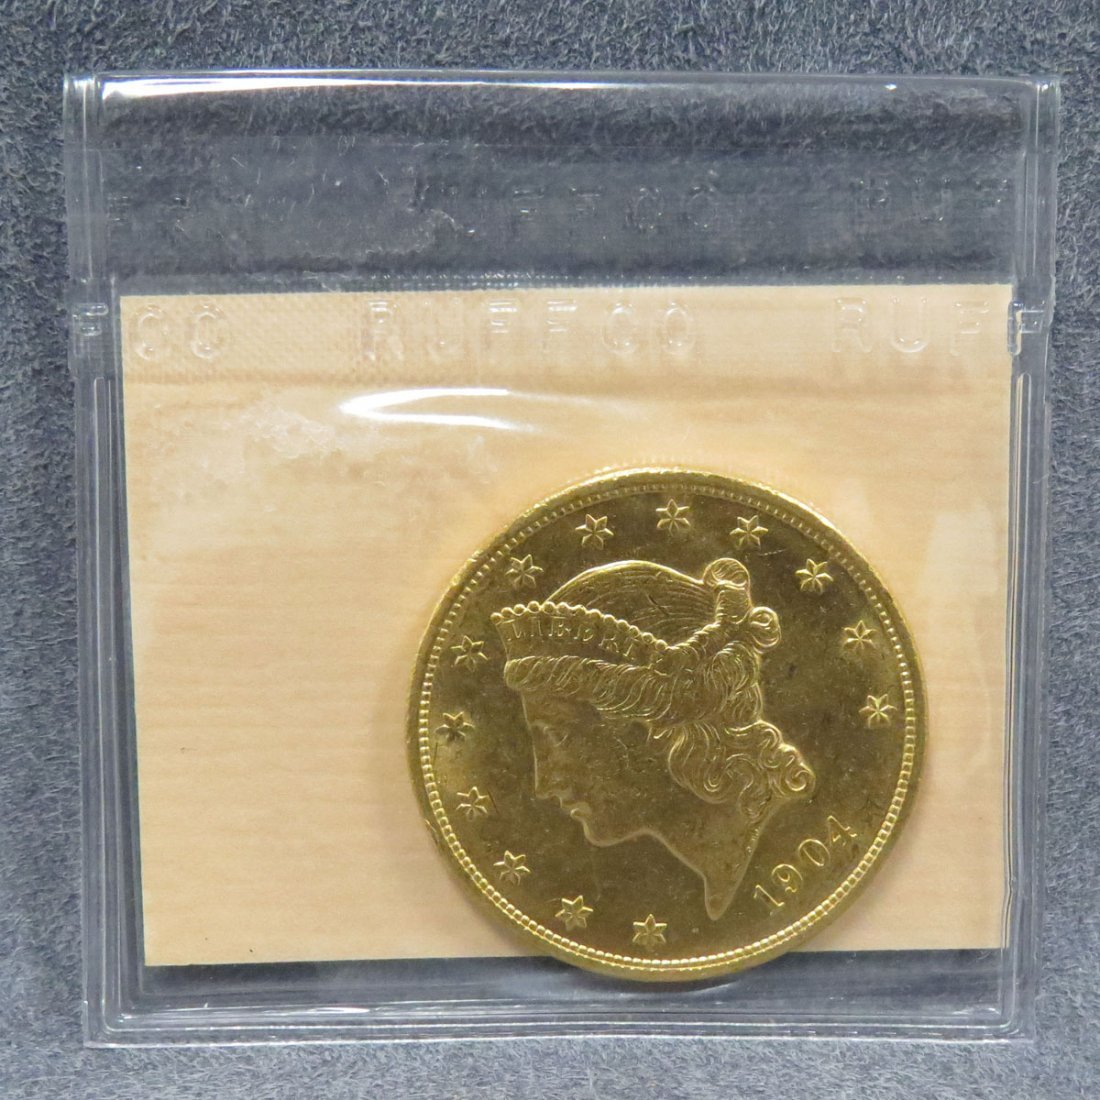 1904 US $20.00 GOLD DOUBLE EAGLE COIN (MS-60)